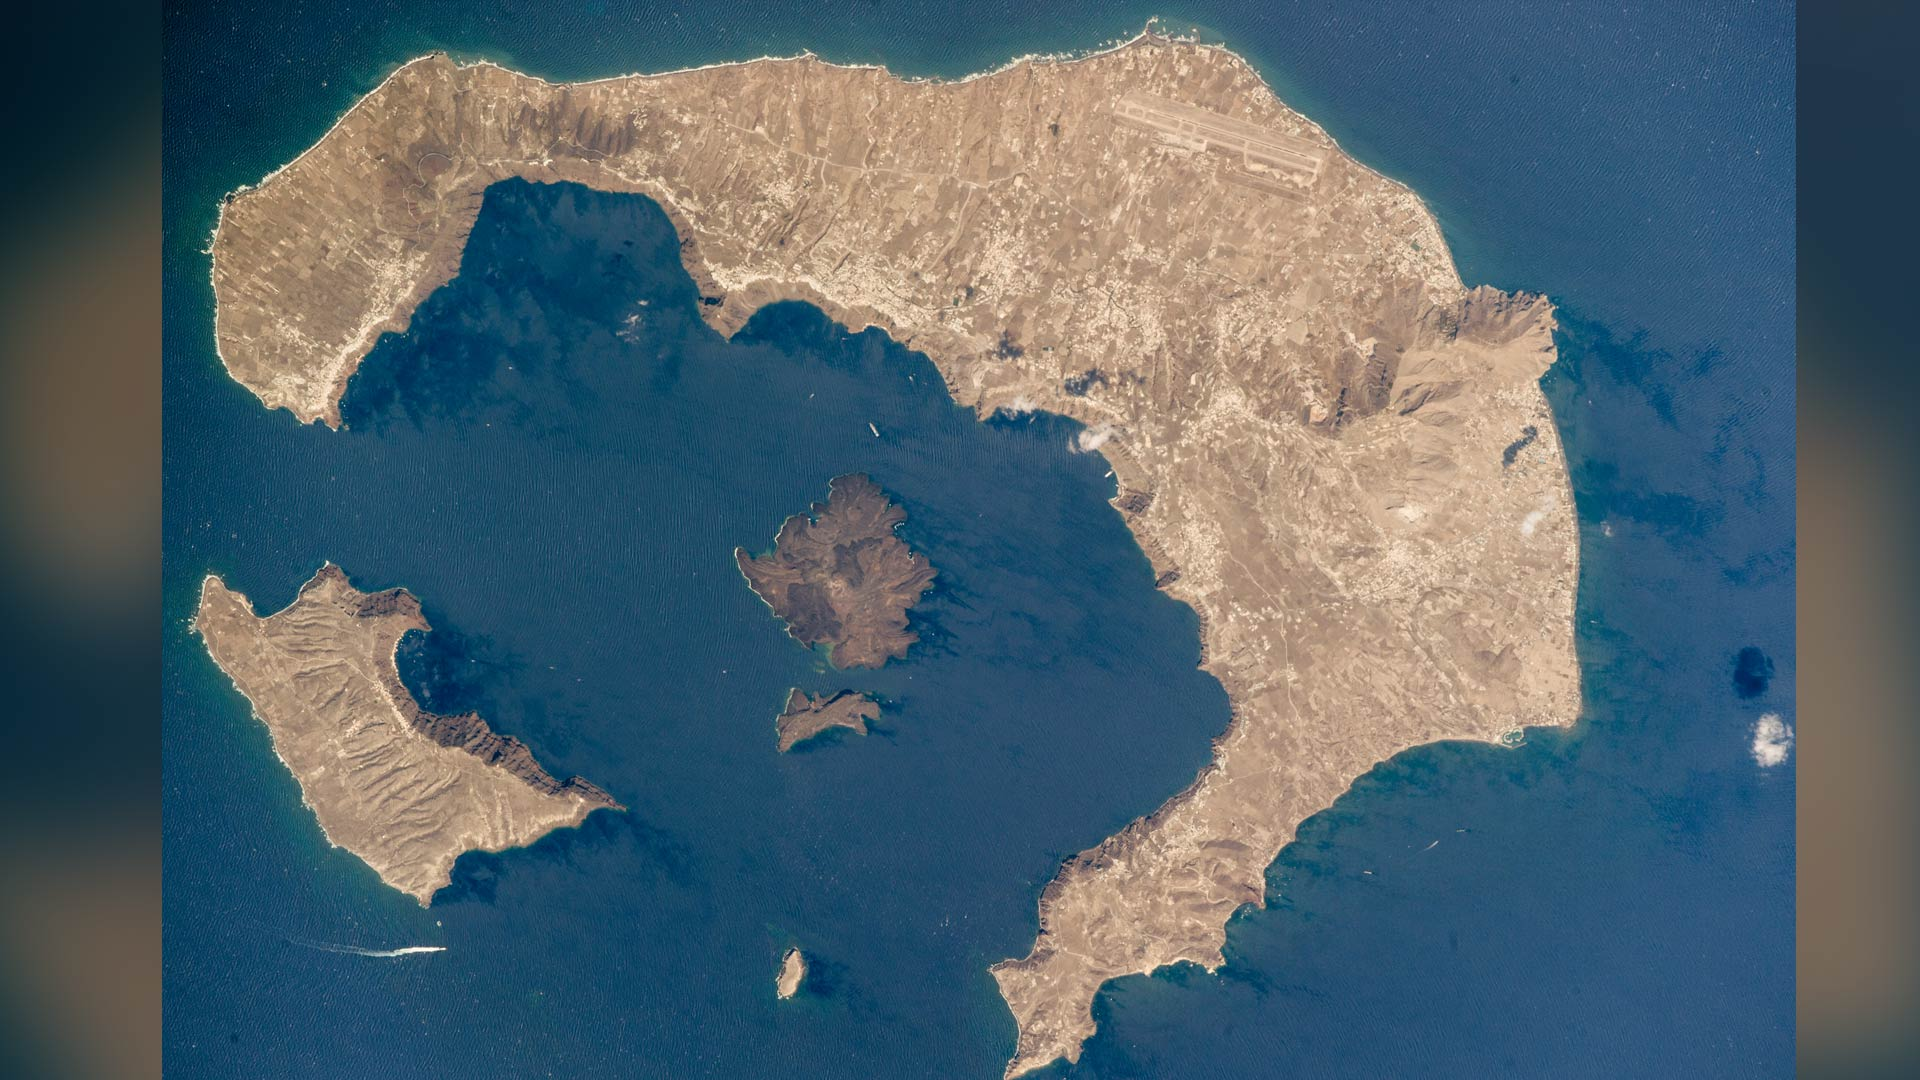 The largest island in the ring is the tourist mecca of Santorini (also known as Thira), while the other islands are Thirasia and Aspronisi. The three pieces are what remains after an enormous eruption destroyed most of a volcanic island. Courtesy of NASA Earth Observatory.